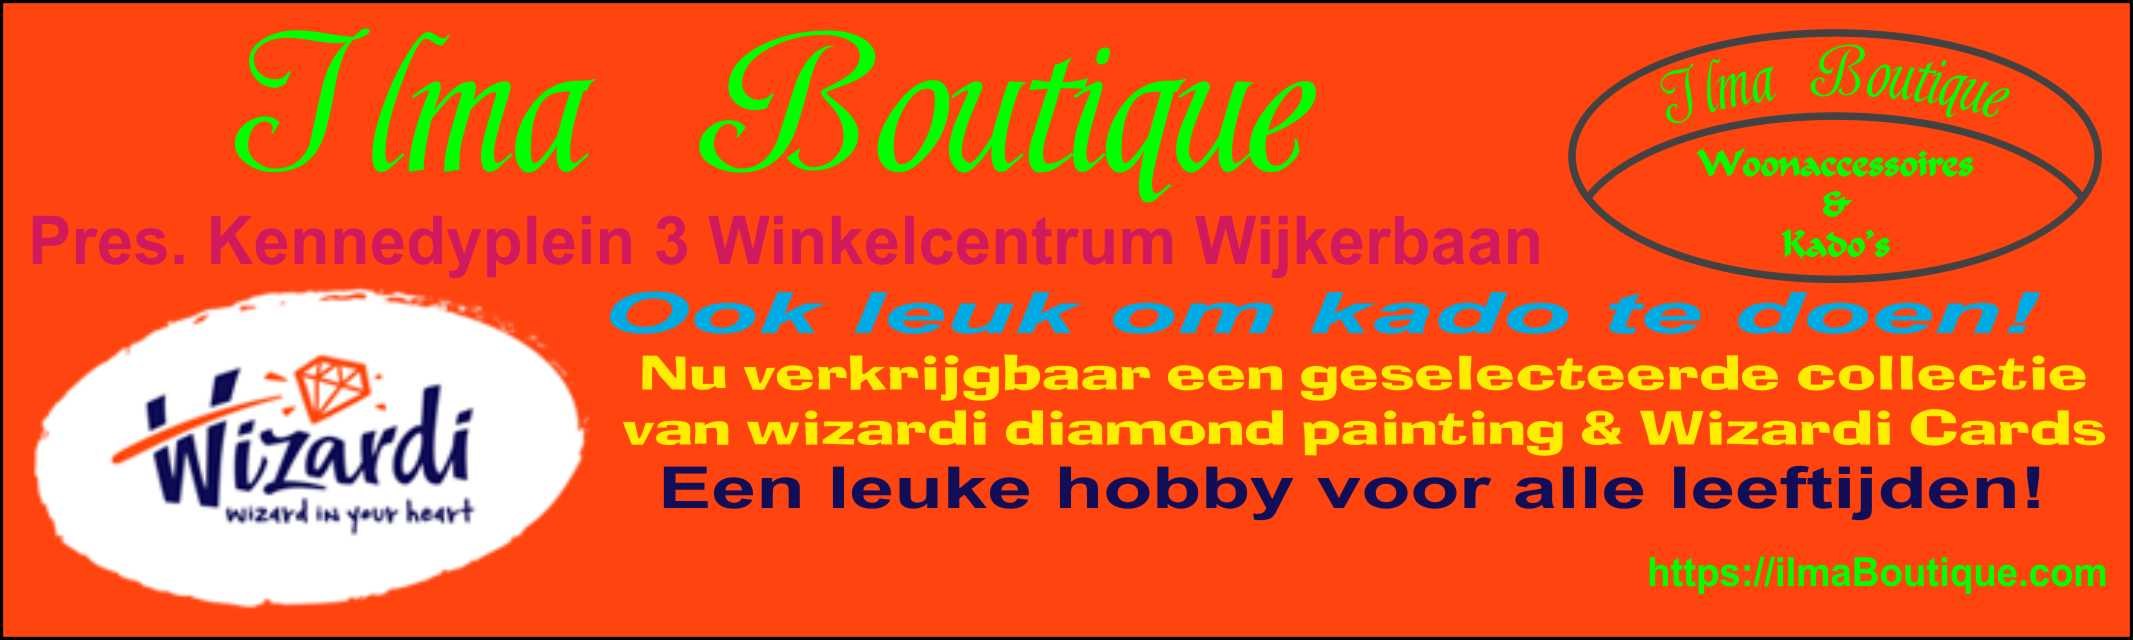 wizardi diamond painting & Wizardi Cards, Verkrijbaar via